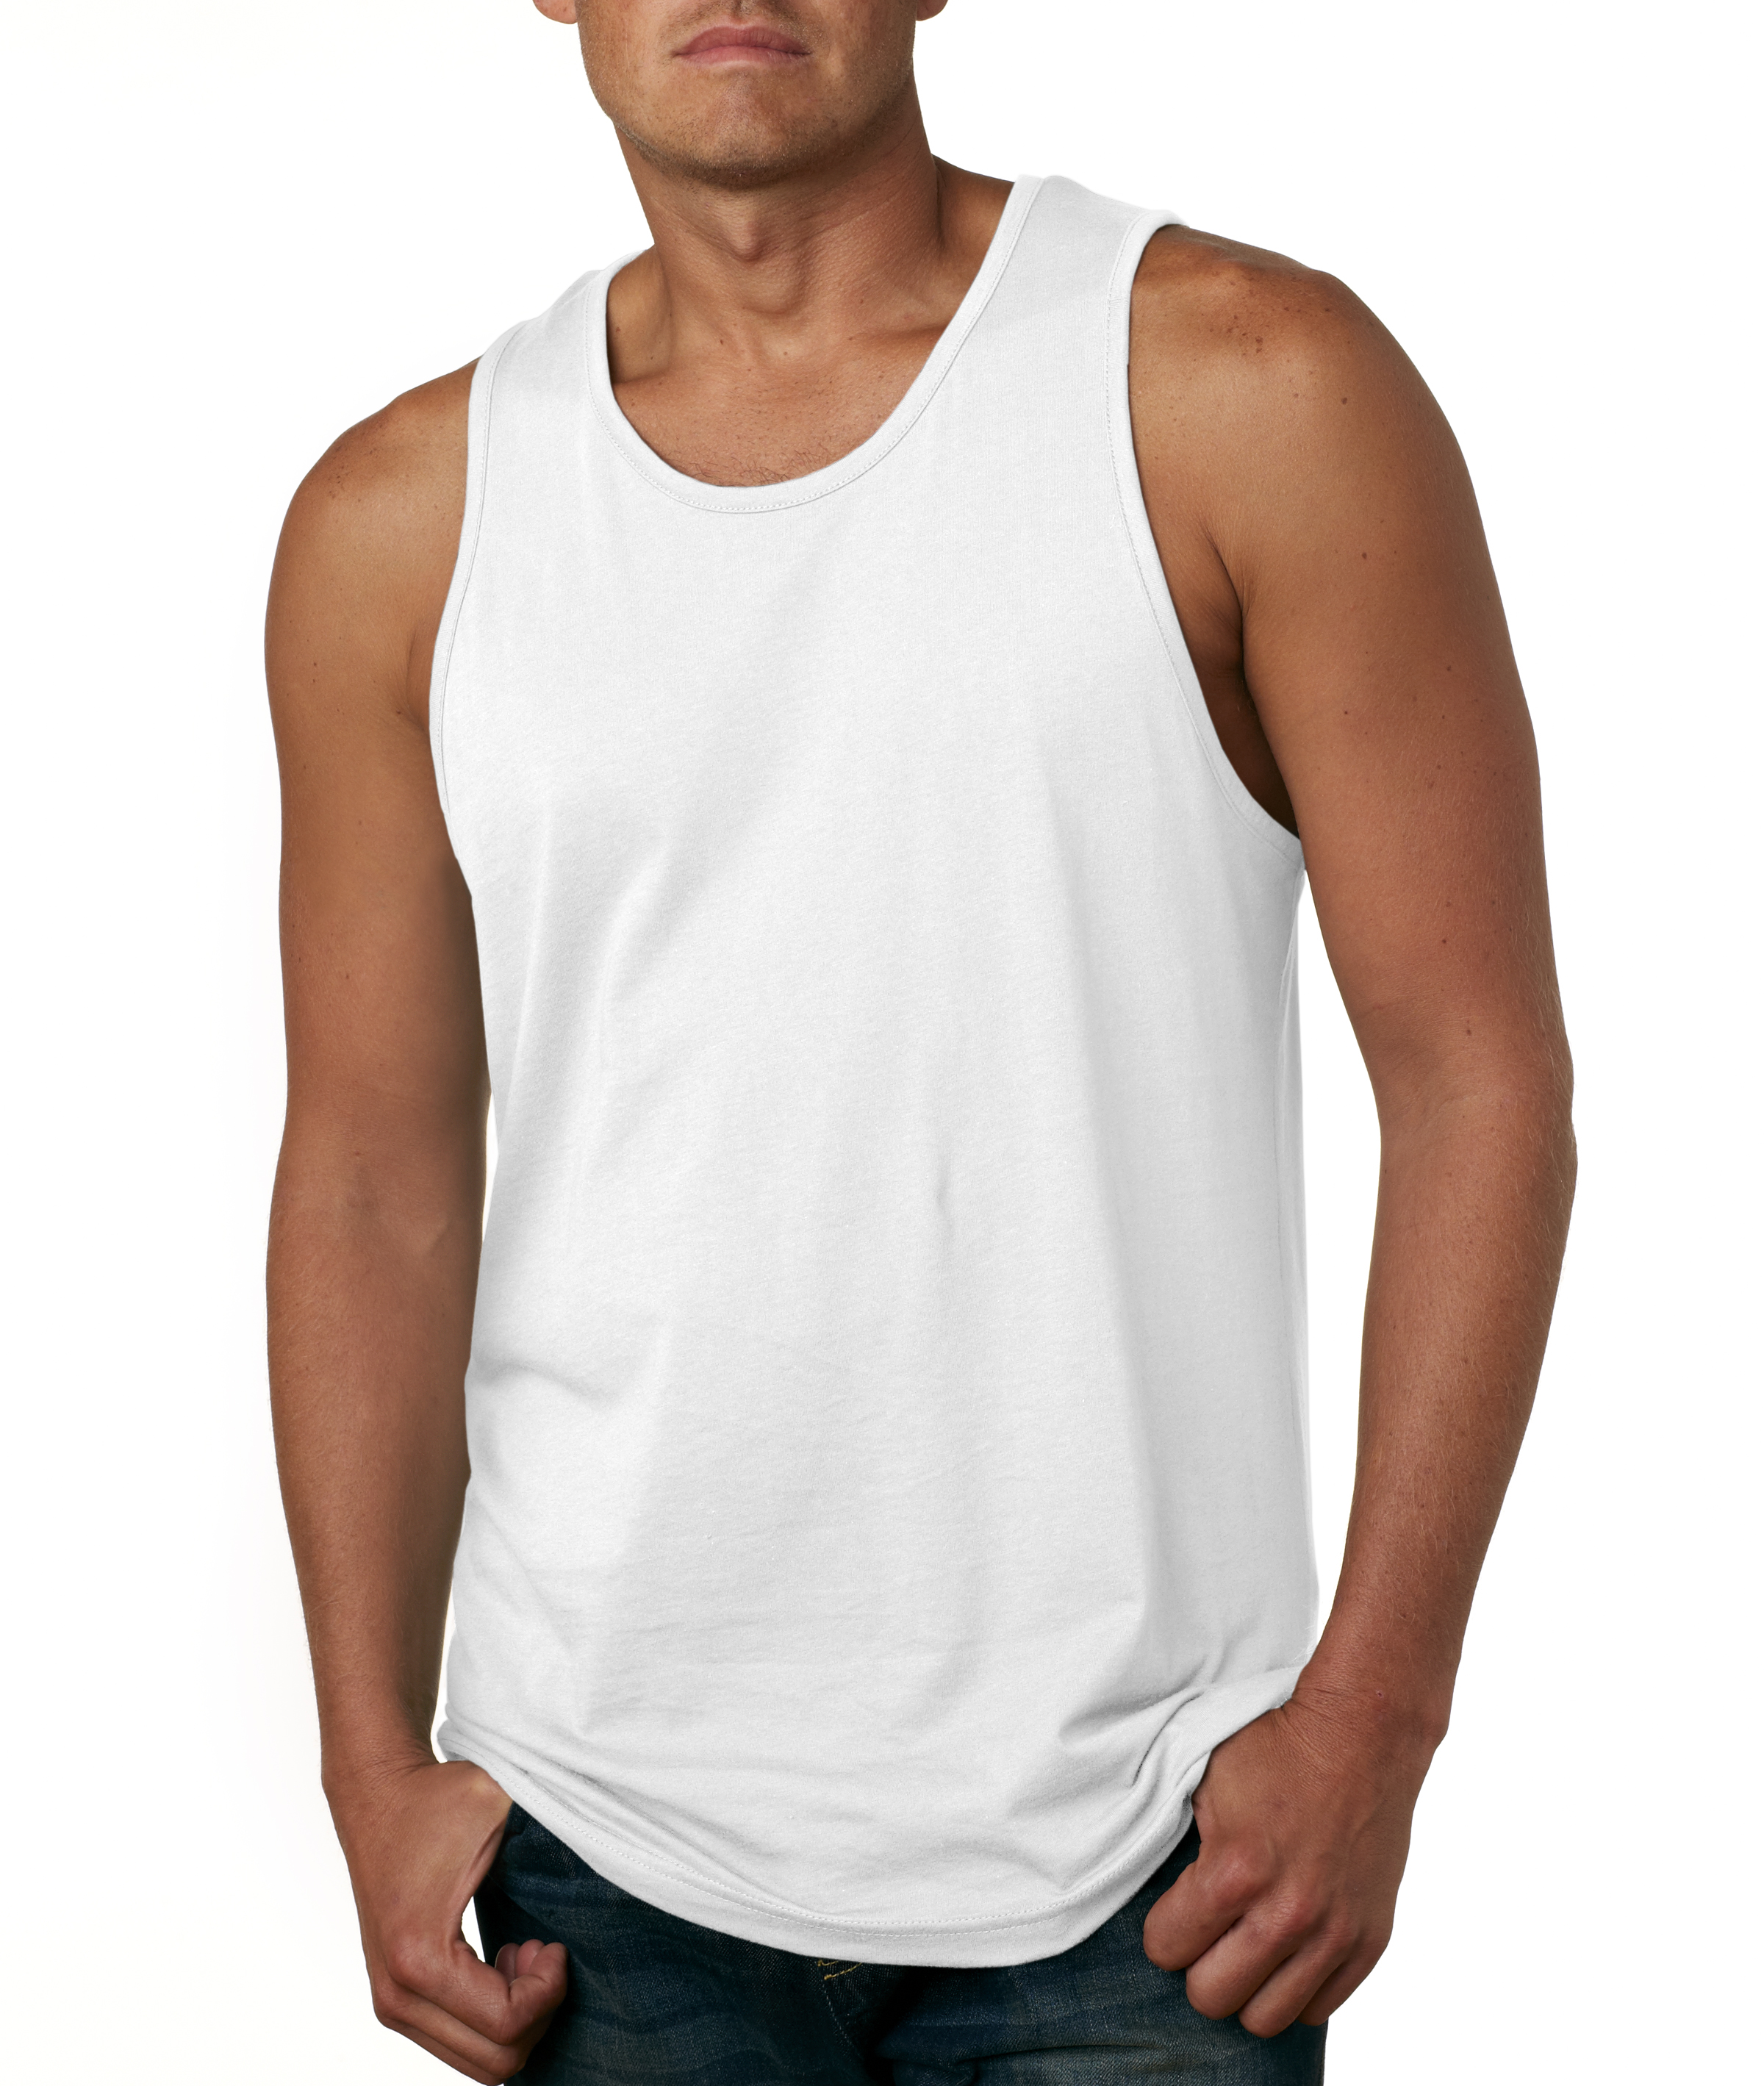 Tank Tops For Men. Bye, bye sleeves! Whether worn alone or layered with a dress shirt, tank tops for men are super-versatile closet essentials. Look to brands like American Rag, Univibe, Ring of Fire and more. Outstanding Undershirts You can never have too many tanks. Stock up on undershirts in breathable cotton blends for comfort that lasts all day.